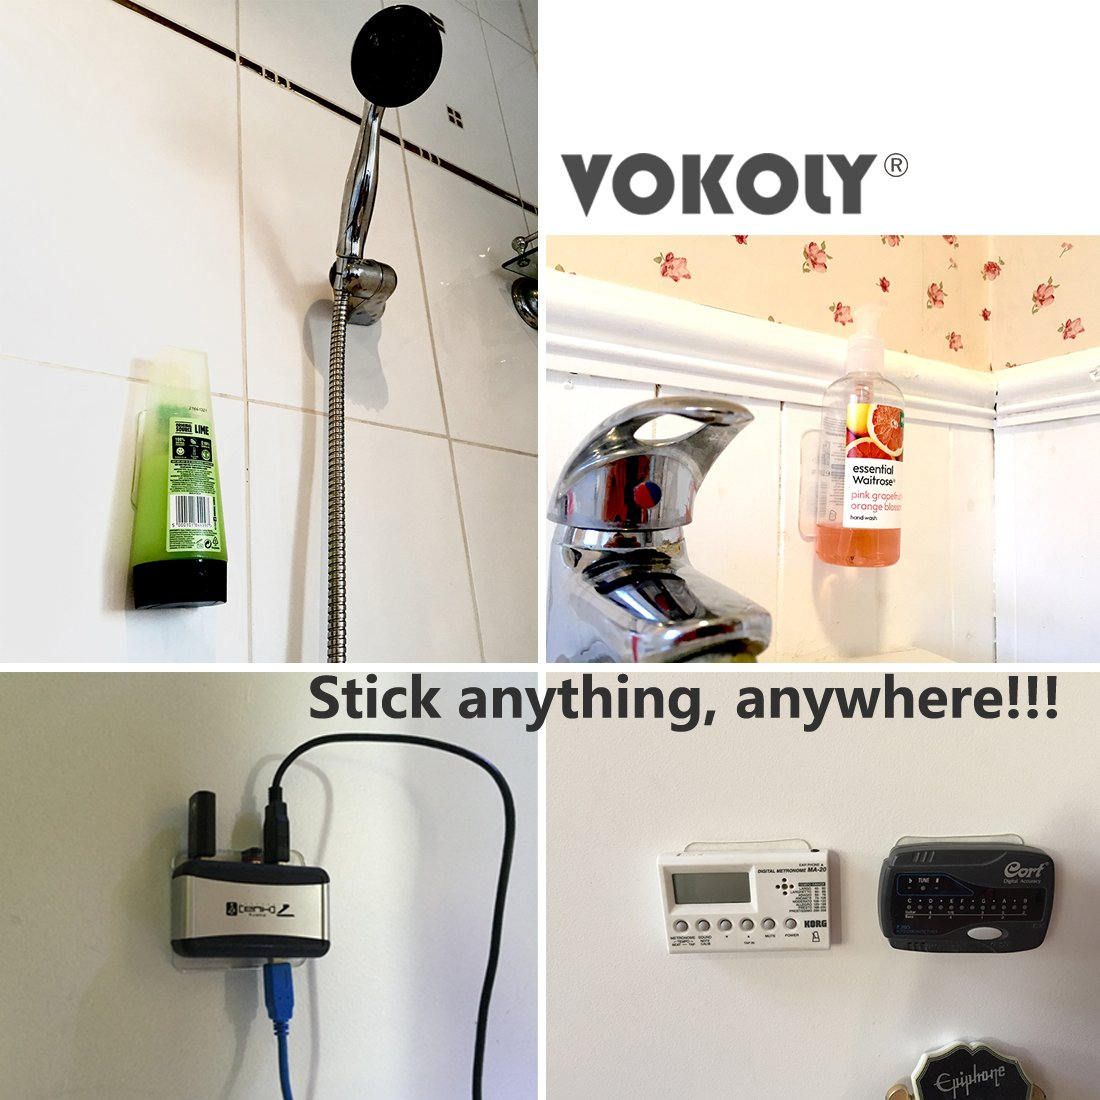 VOKOLY, Universal non-slip mats,Sticky Anti-Slip Gel Pads,Stick to Anywhere&Holds Anything (8 PACK Clear) by VOKOLY (Image #4)